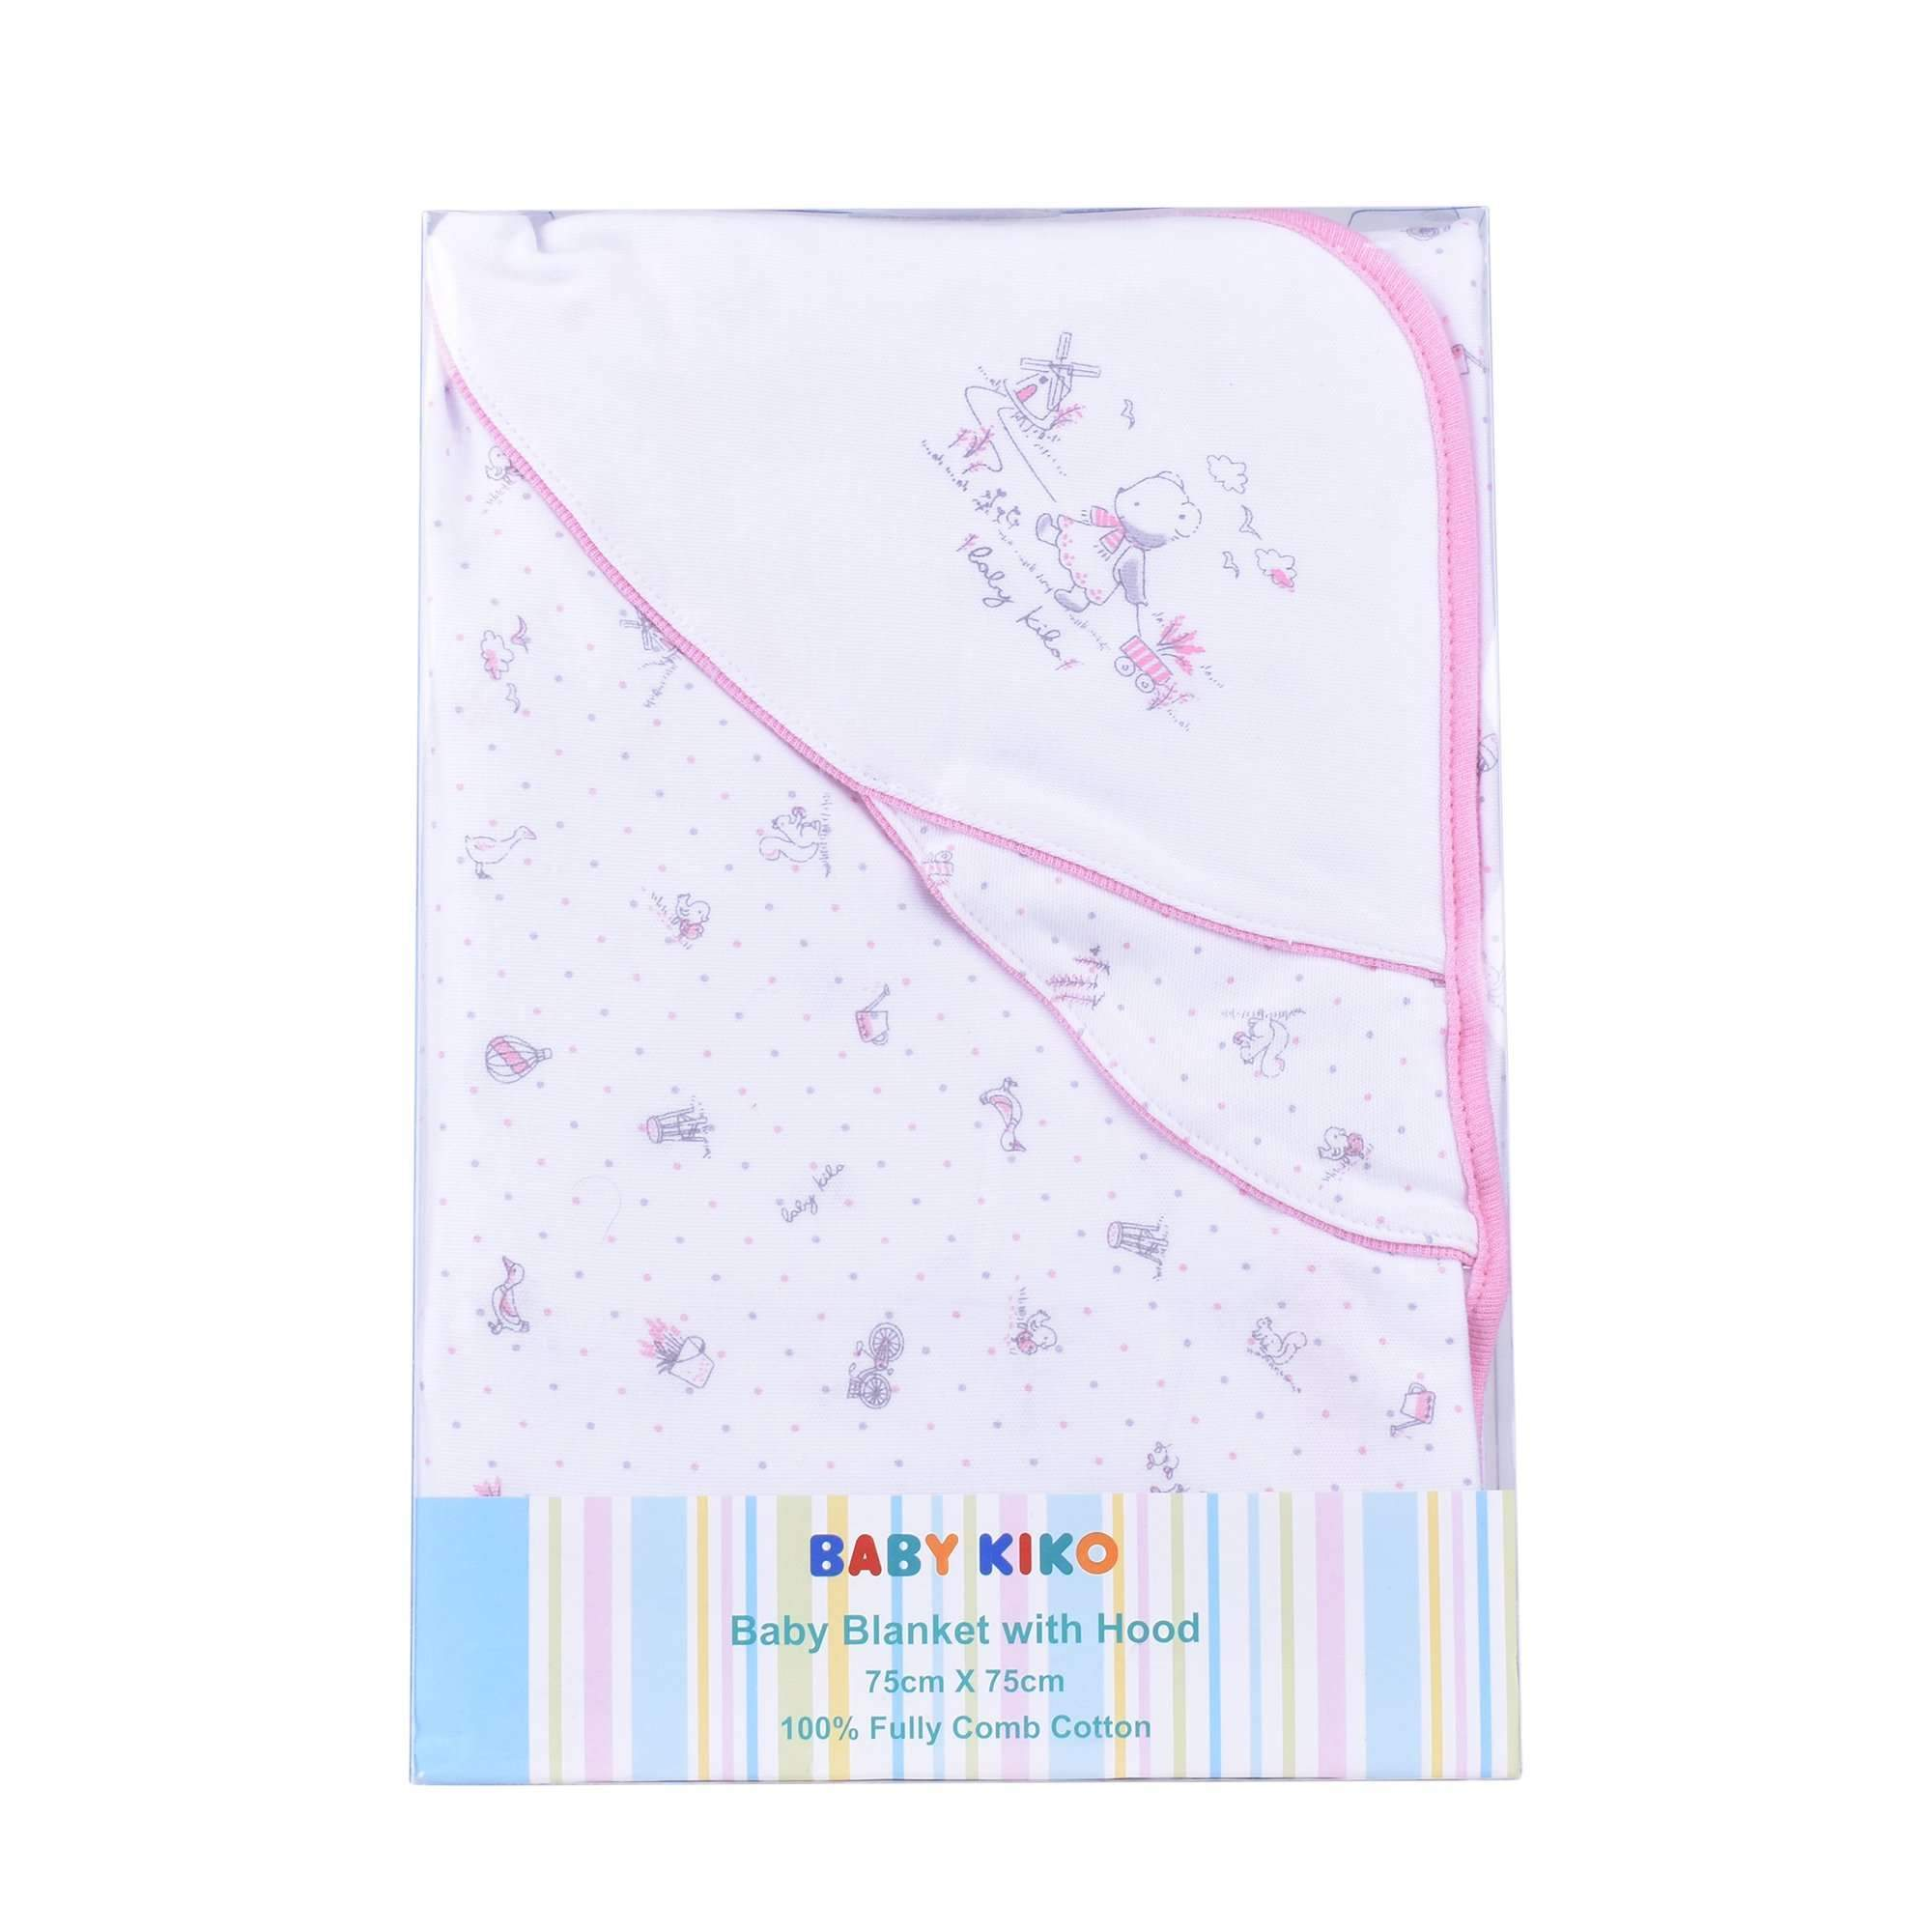 Baby KIKO Baby Girl Hooded Blanket Full Print 3642-002 : Buy Baby KIKO online at CMG.MY